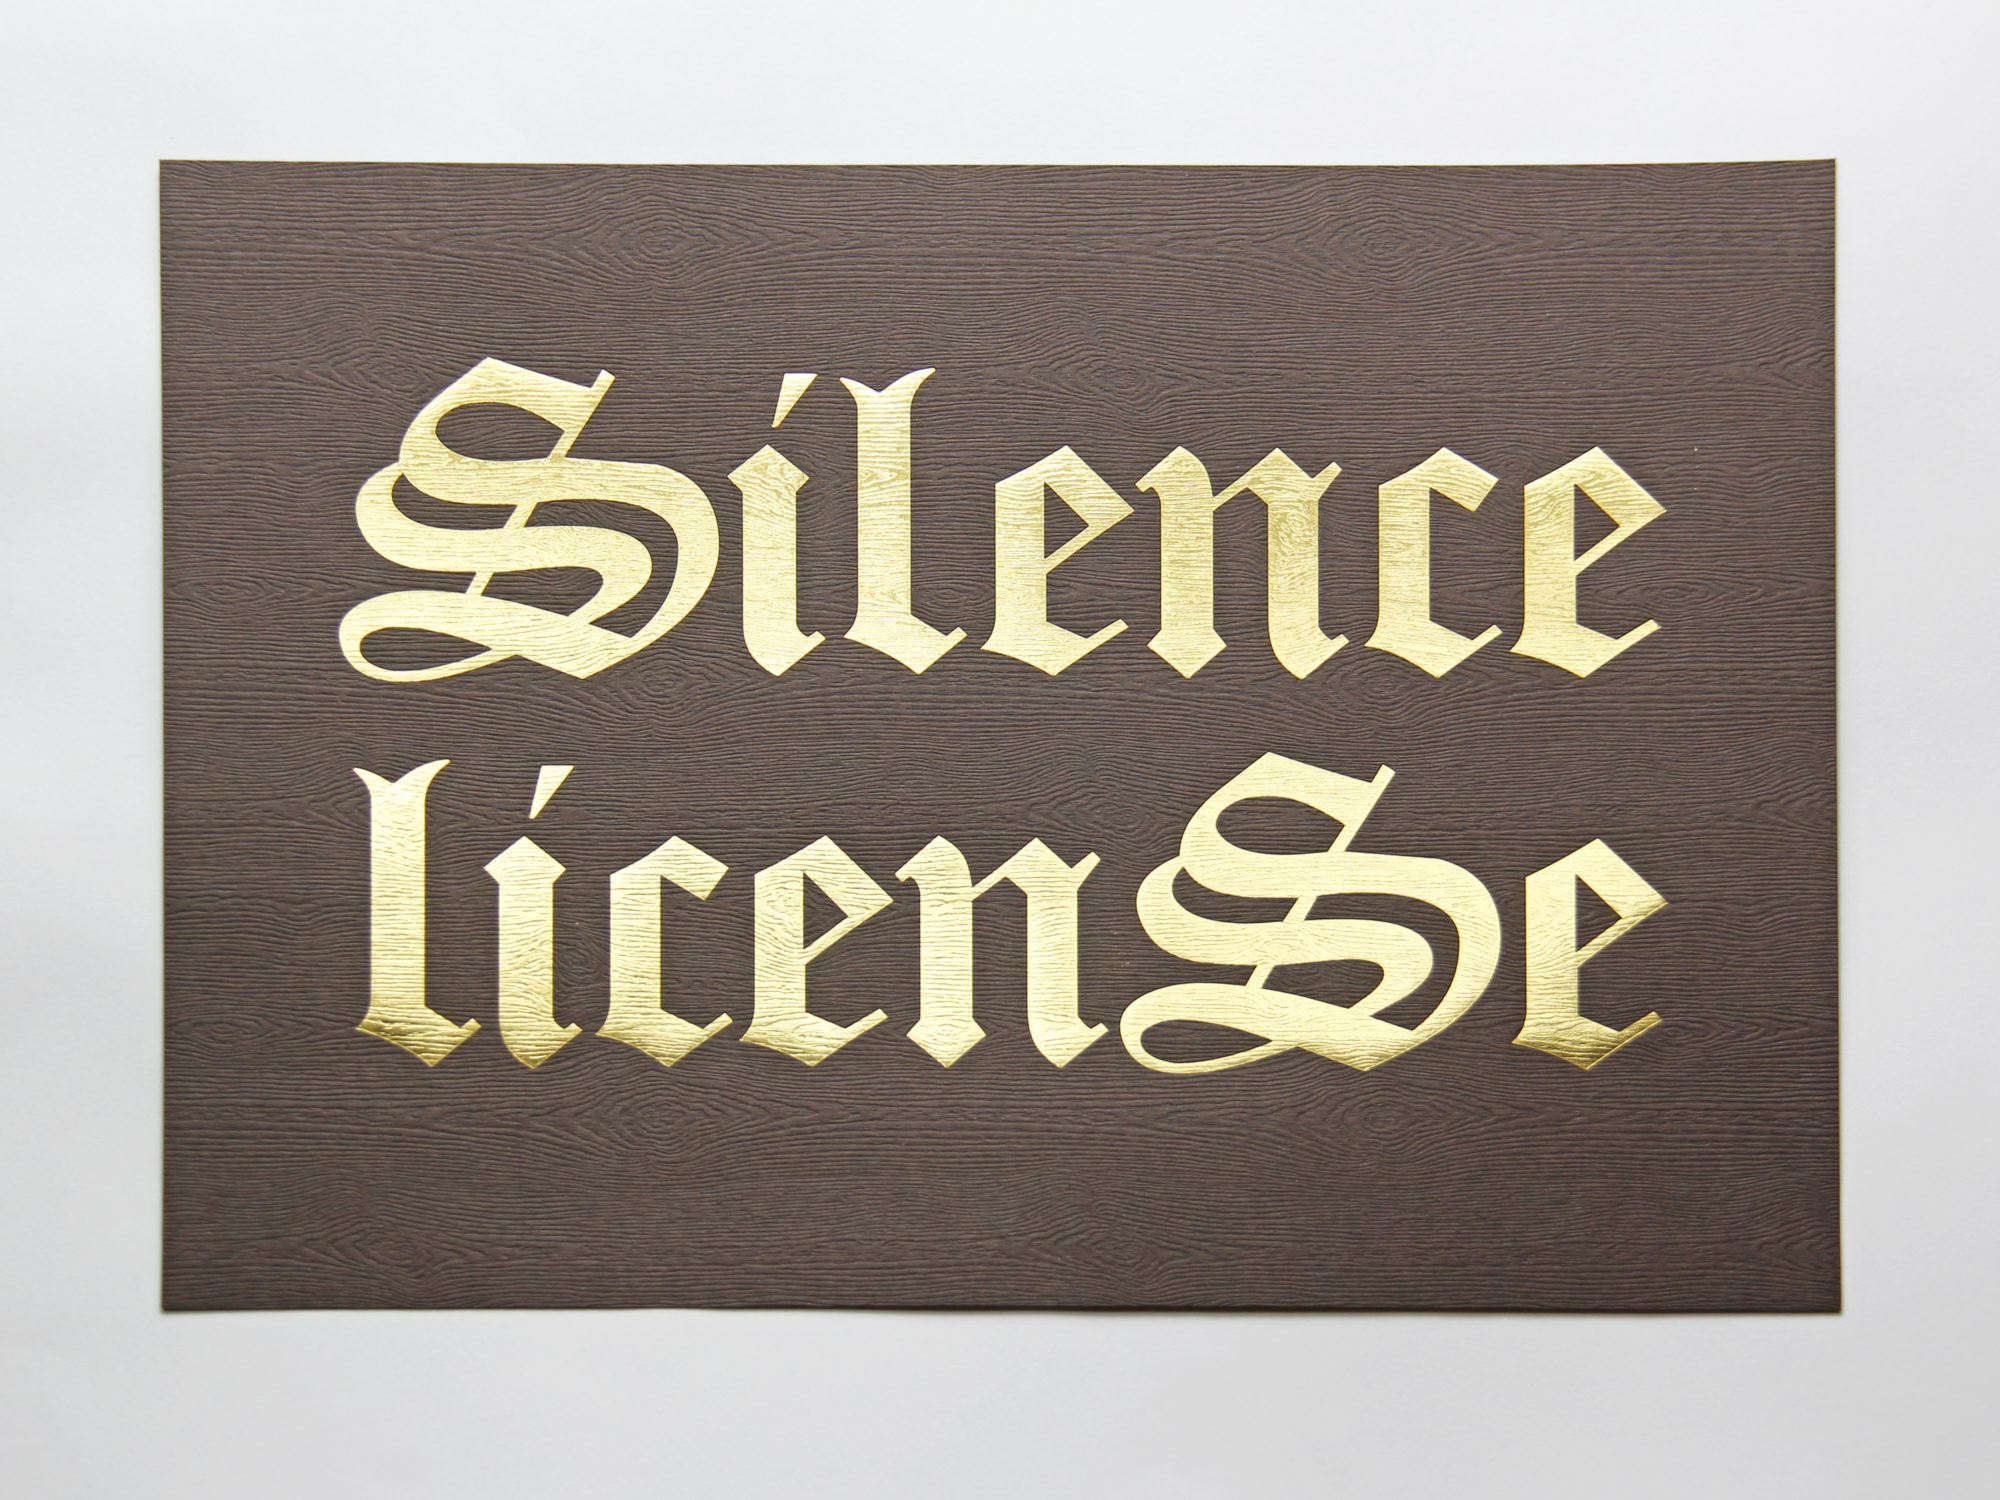 """A print with """"Silence License"""" written in gold lettering on brown wood grain paper background."""